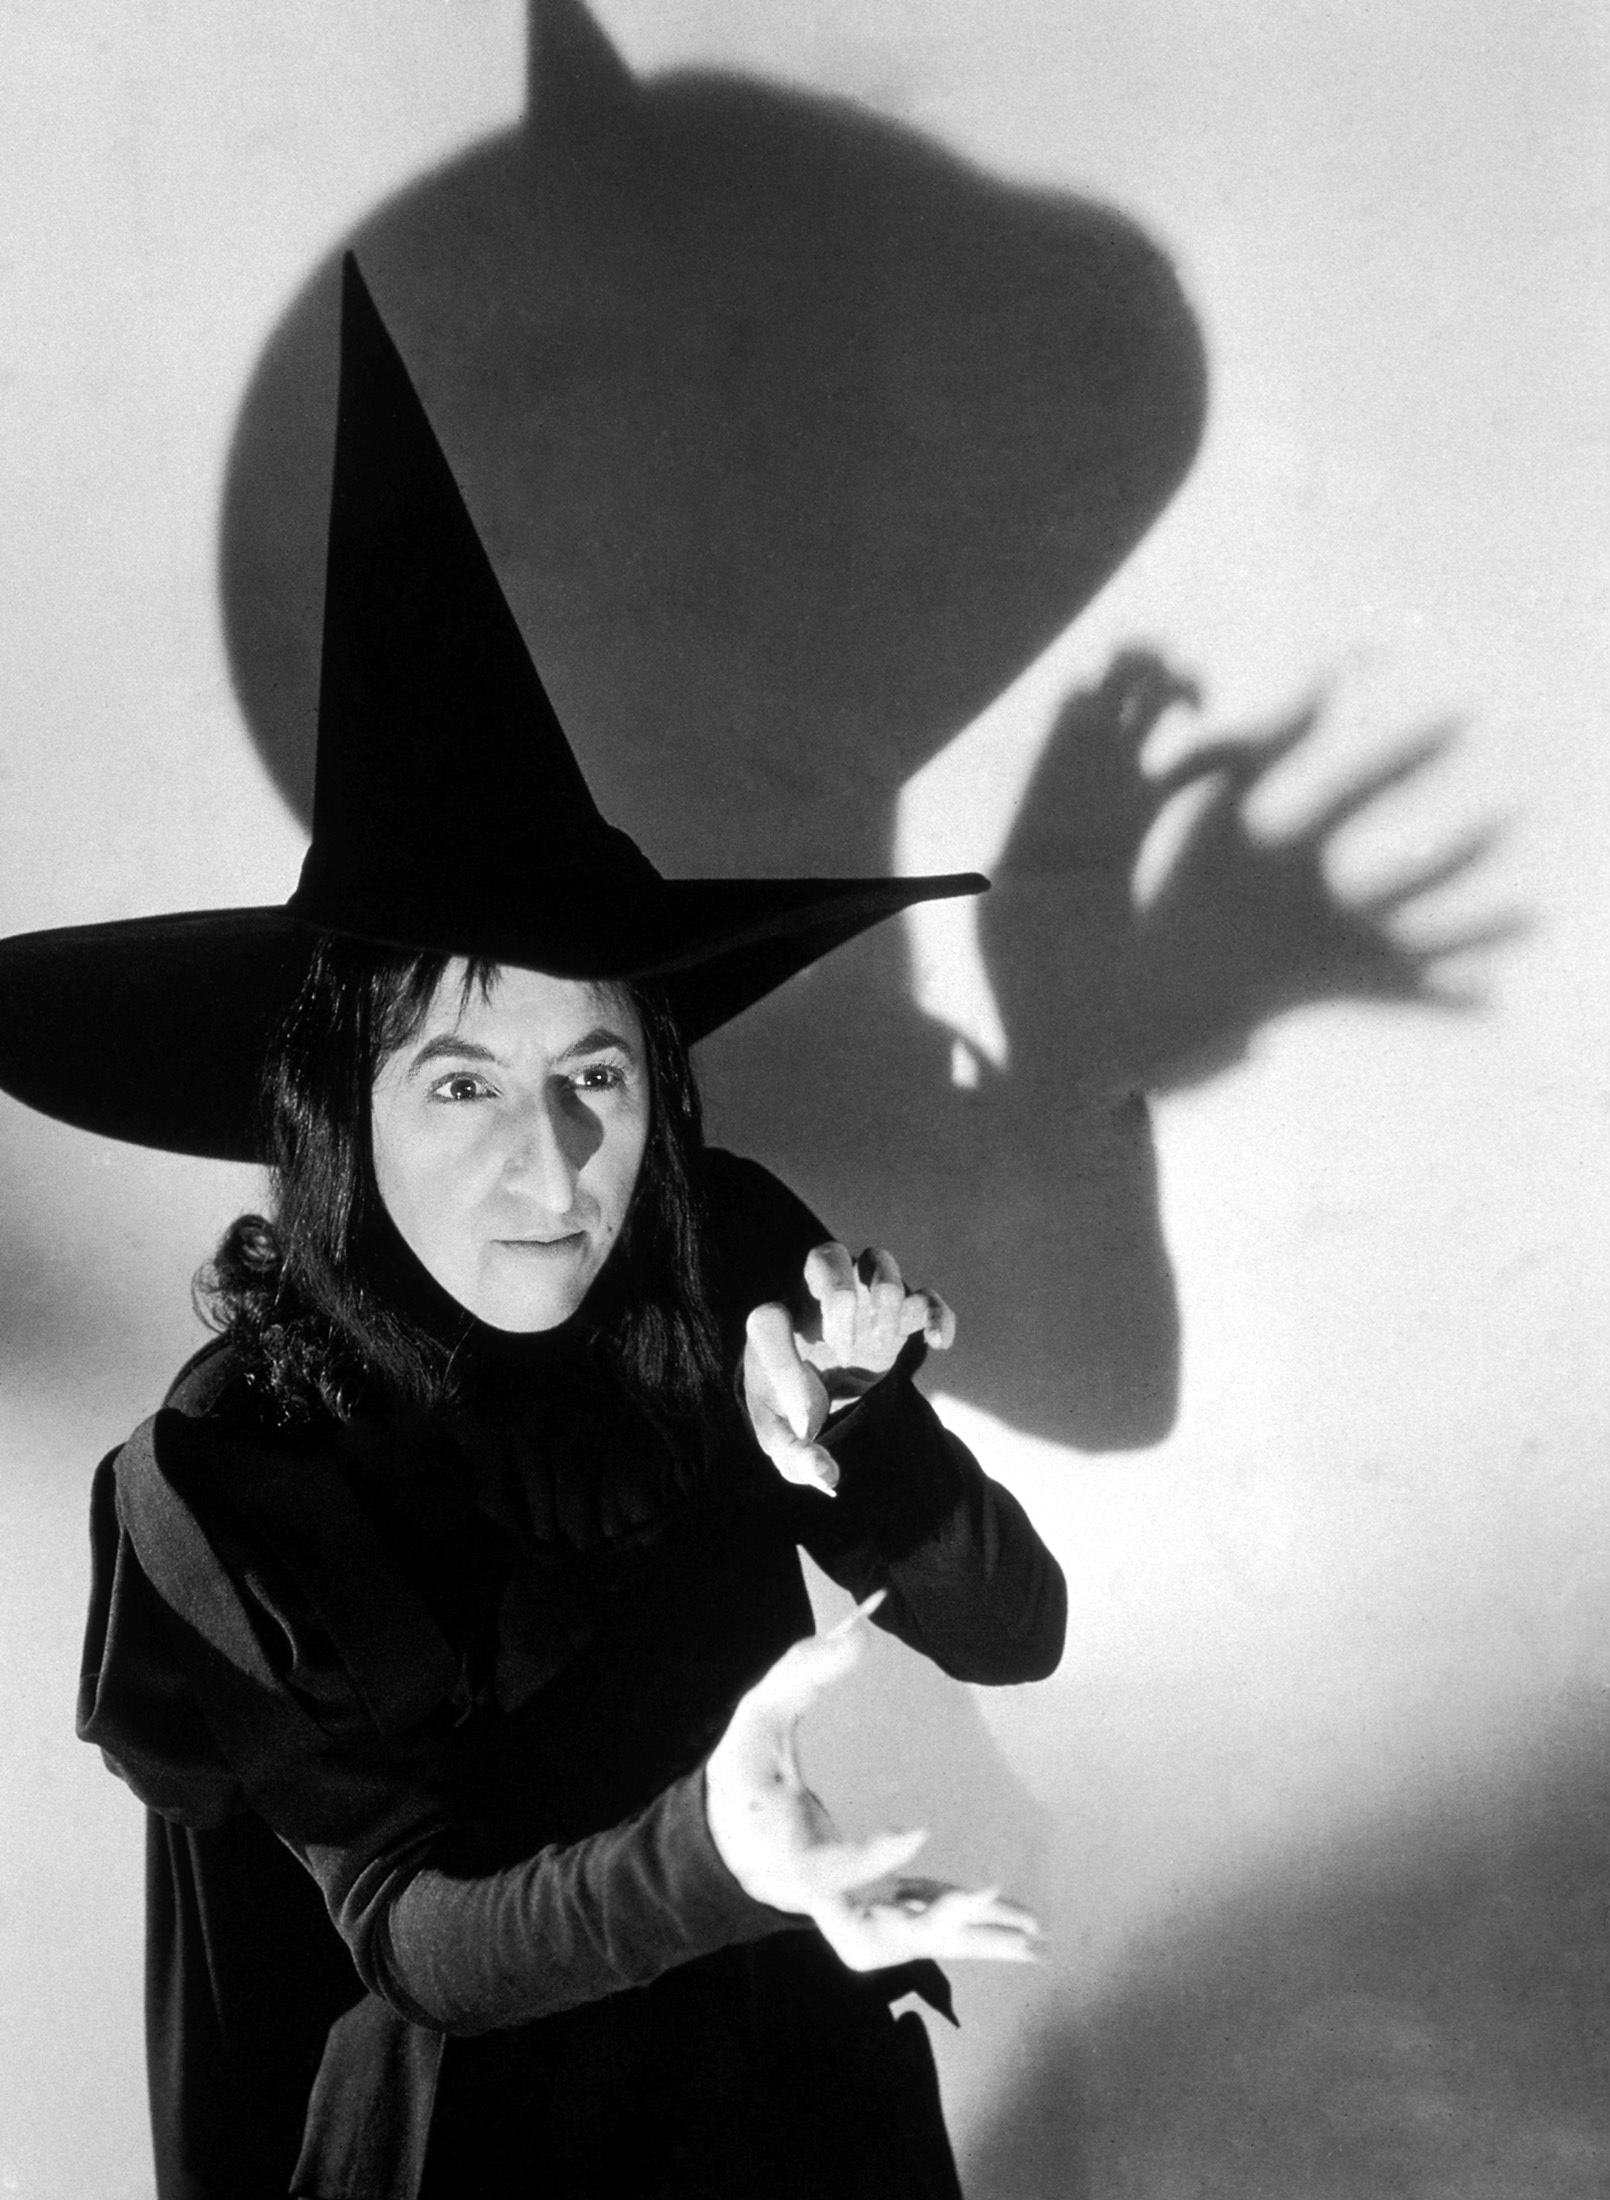 Margaret Hamilton (actress) nudes (34 pictures) Video, YouTube, panties